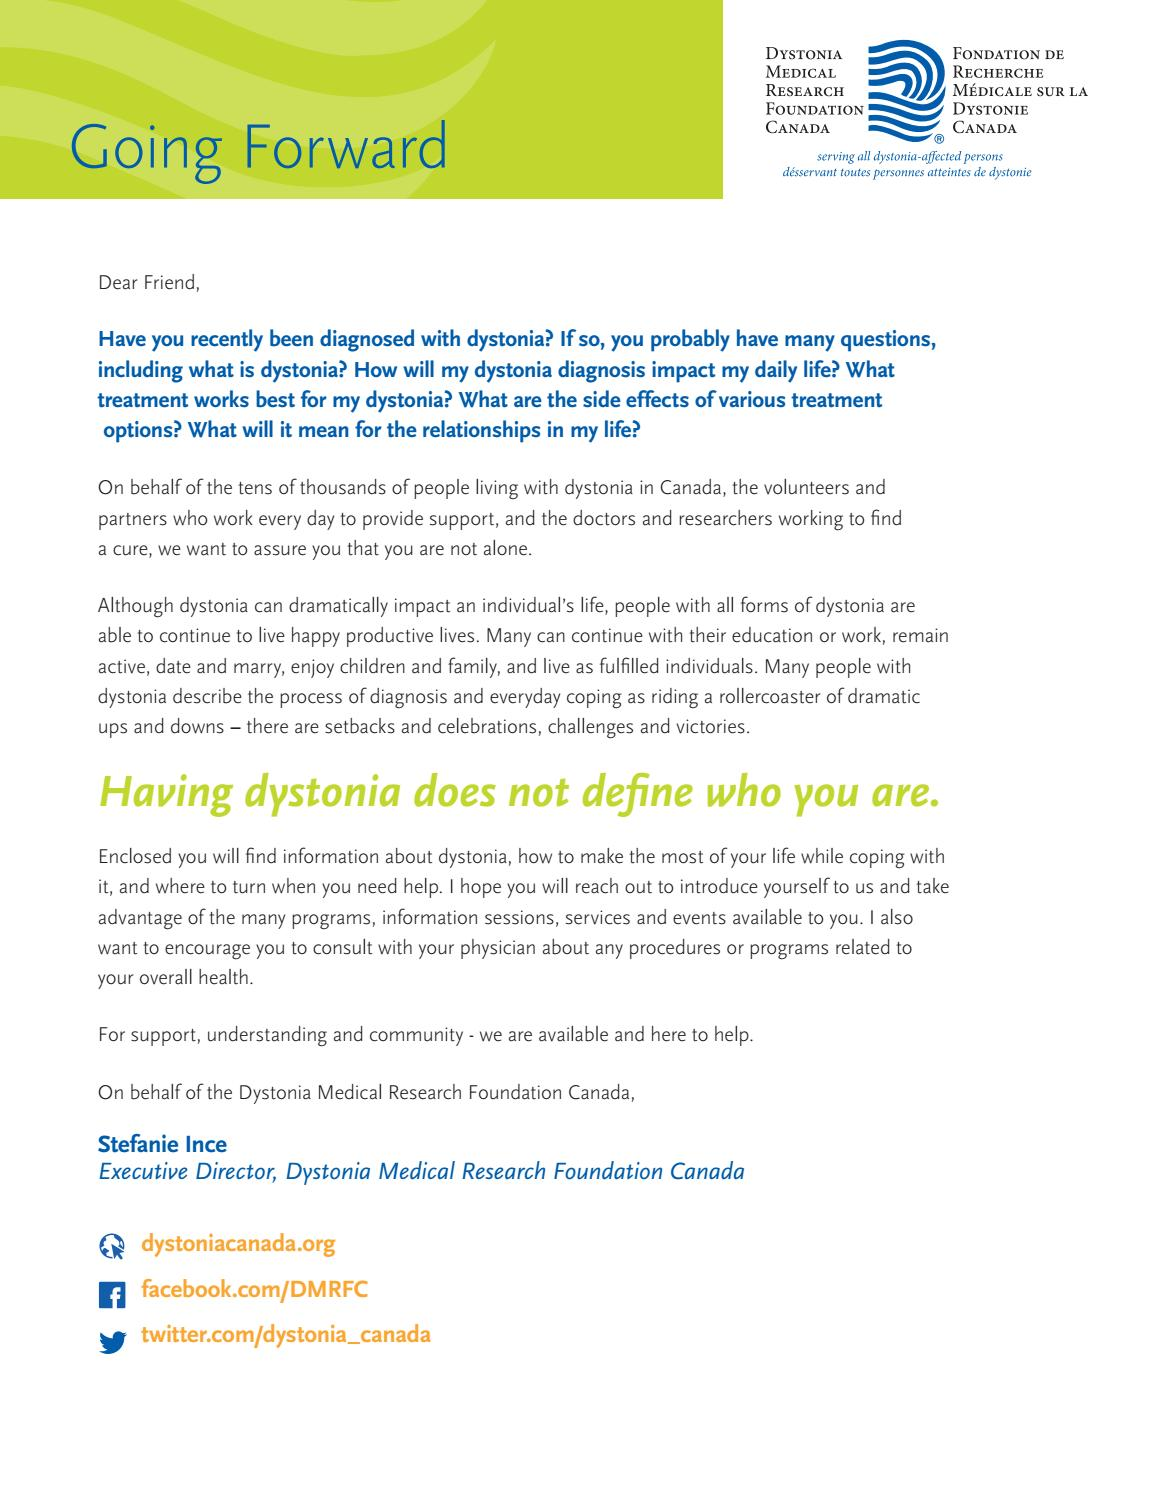 Going forward with dystonia by dystonia medical research foundation going forward with dystonia by dystonia medical research foundation issuu solutioingenieria Gallery